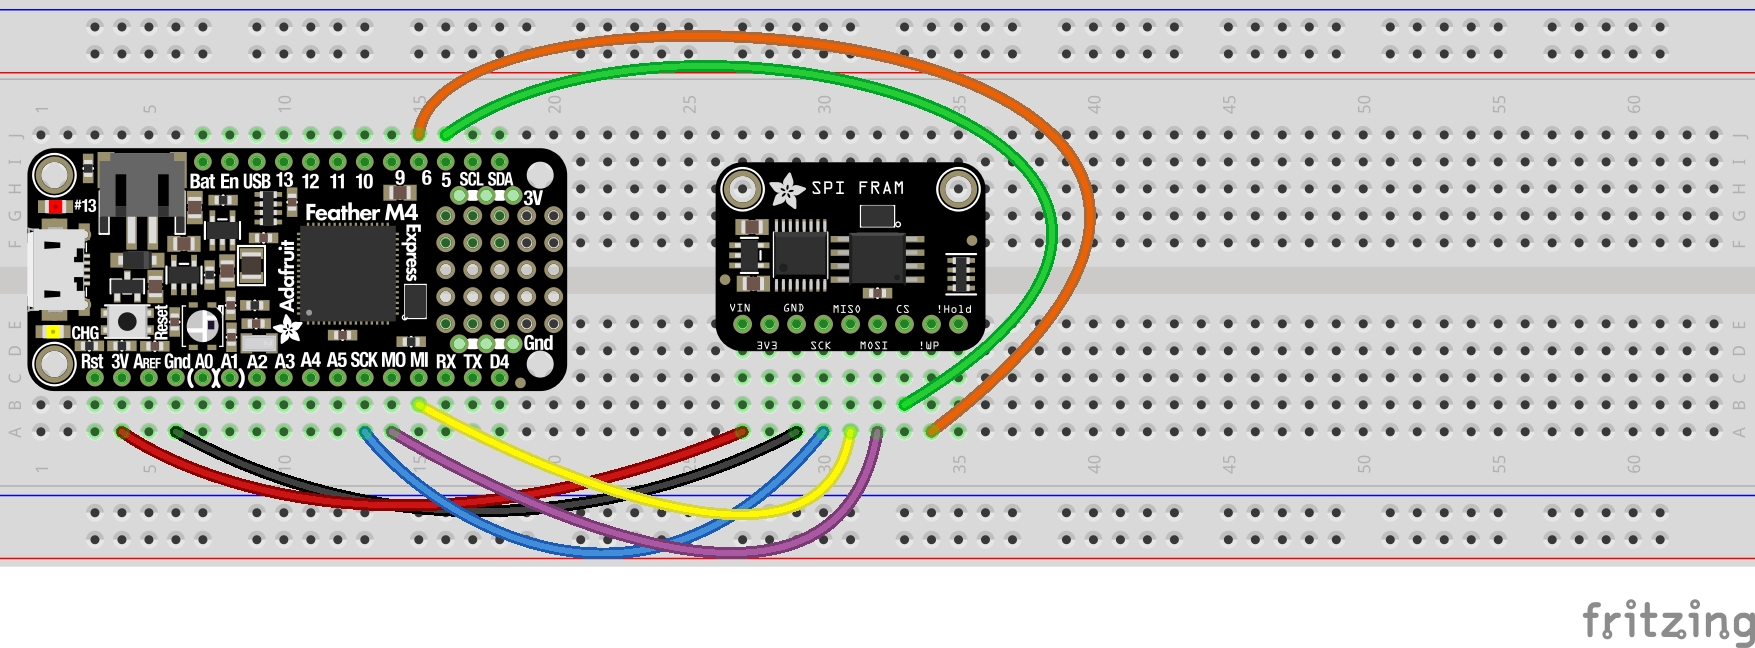 components_SPI_FRAM_FeatherM4_write_protect_bb.jpg